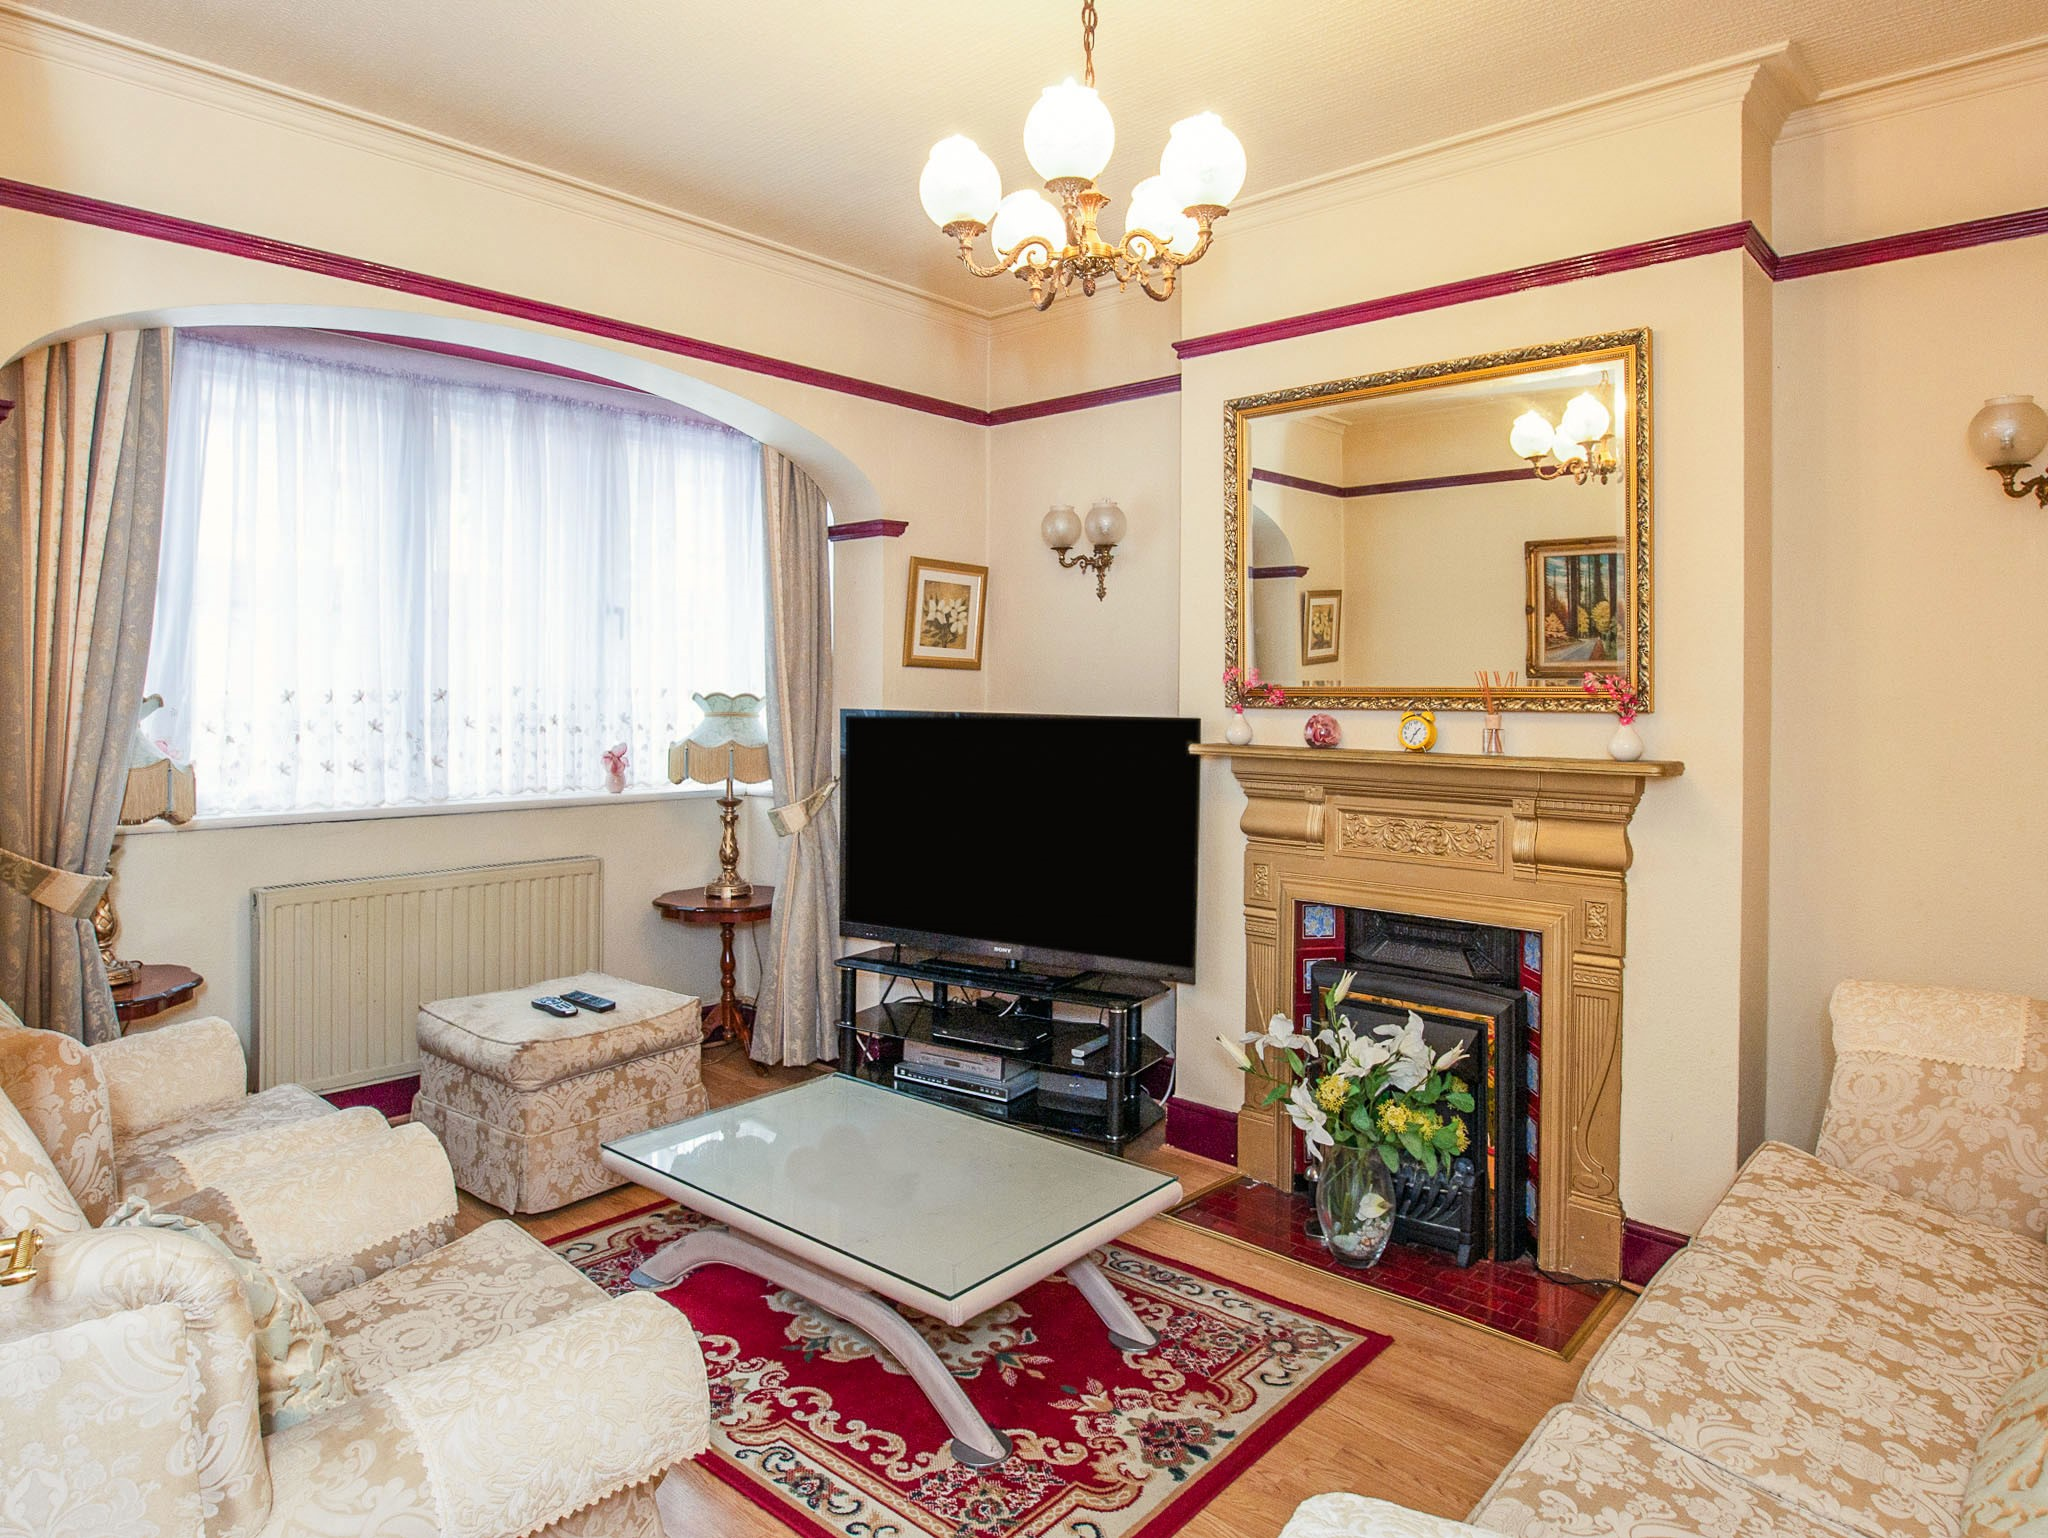 Penshurst Road, Thornton Heath, Surrey, ., CR7